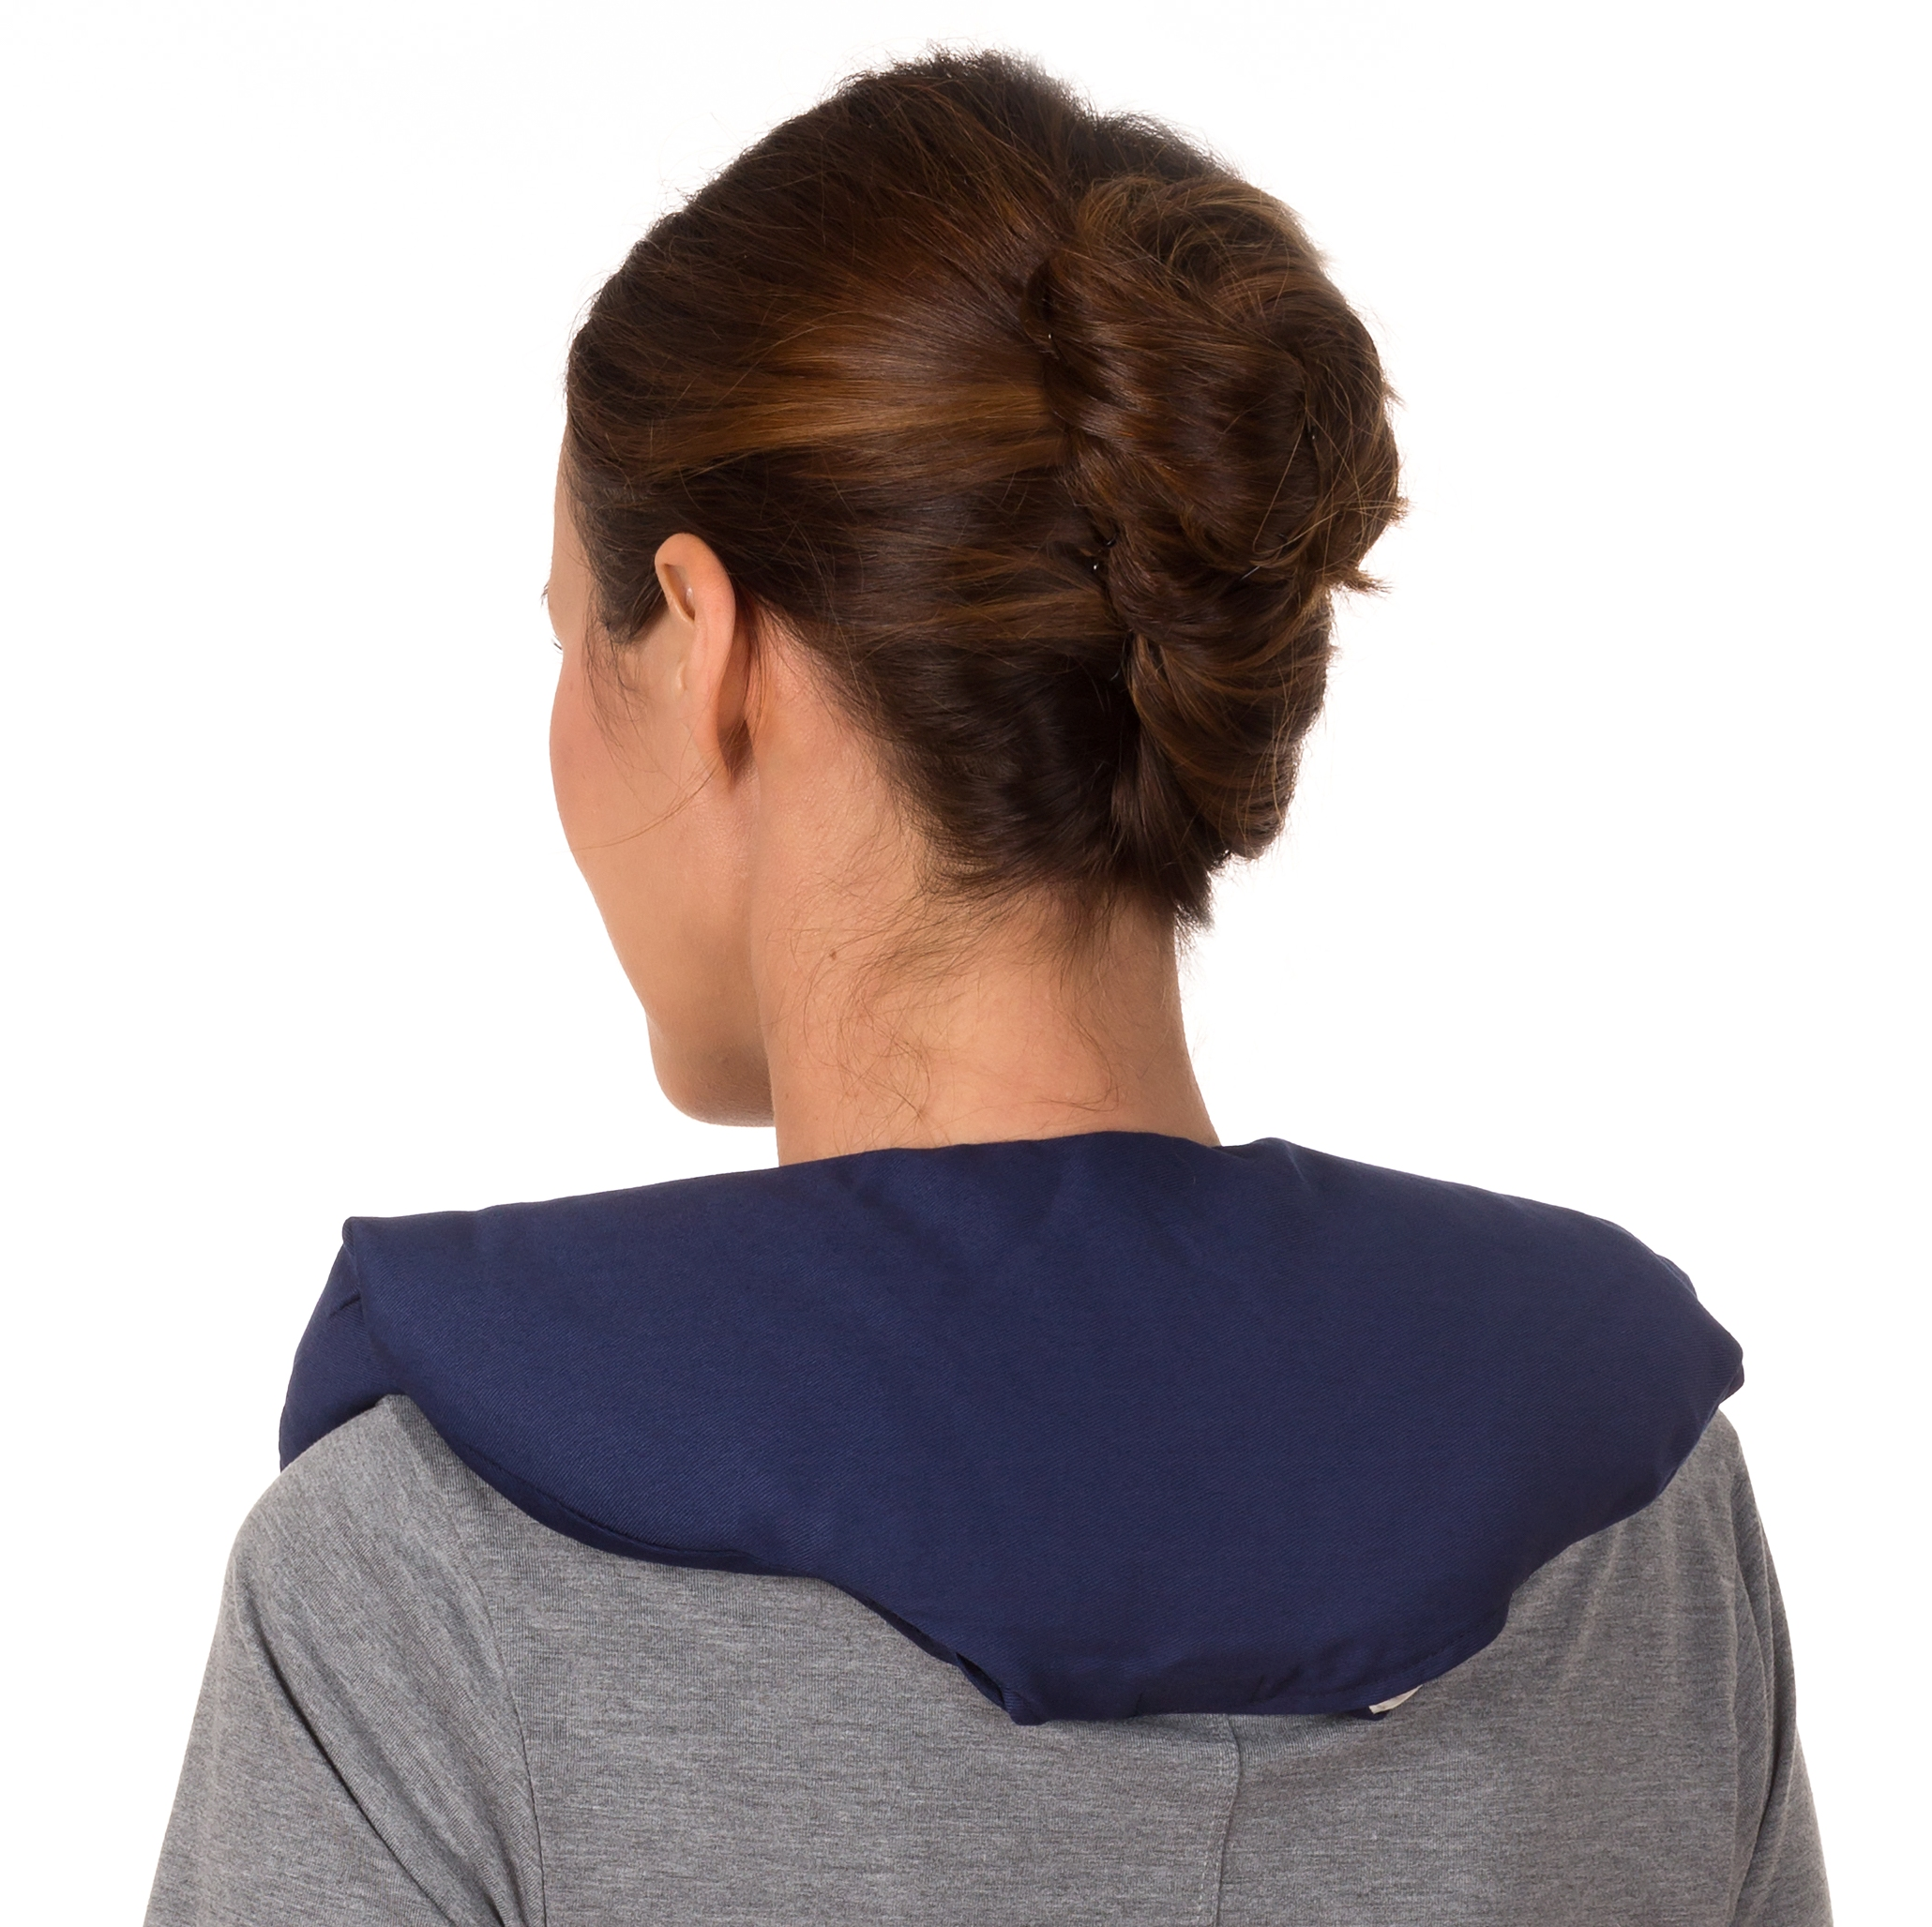 Sunny Bay Microwavable Neck and Shoulder Heat Wrap, 100% Cotton Cover, Flax Seeds Filled, Large, Navy Blue